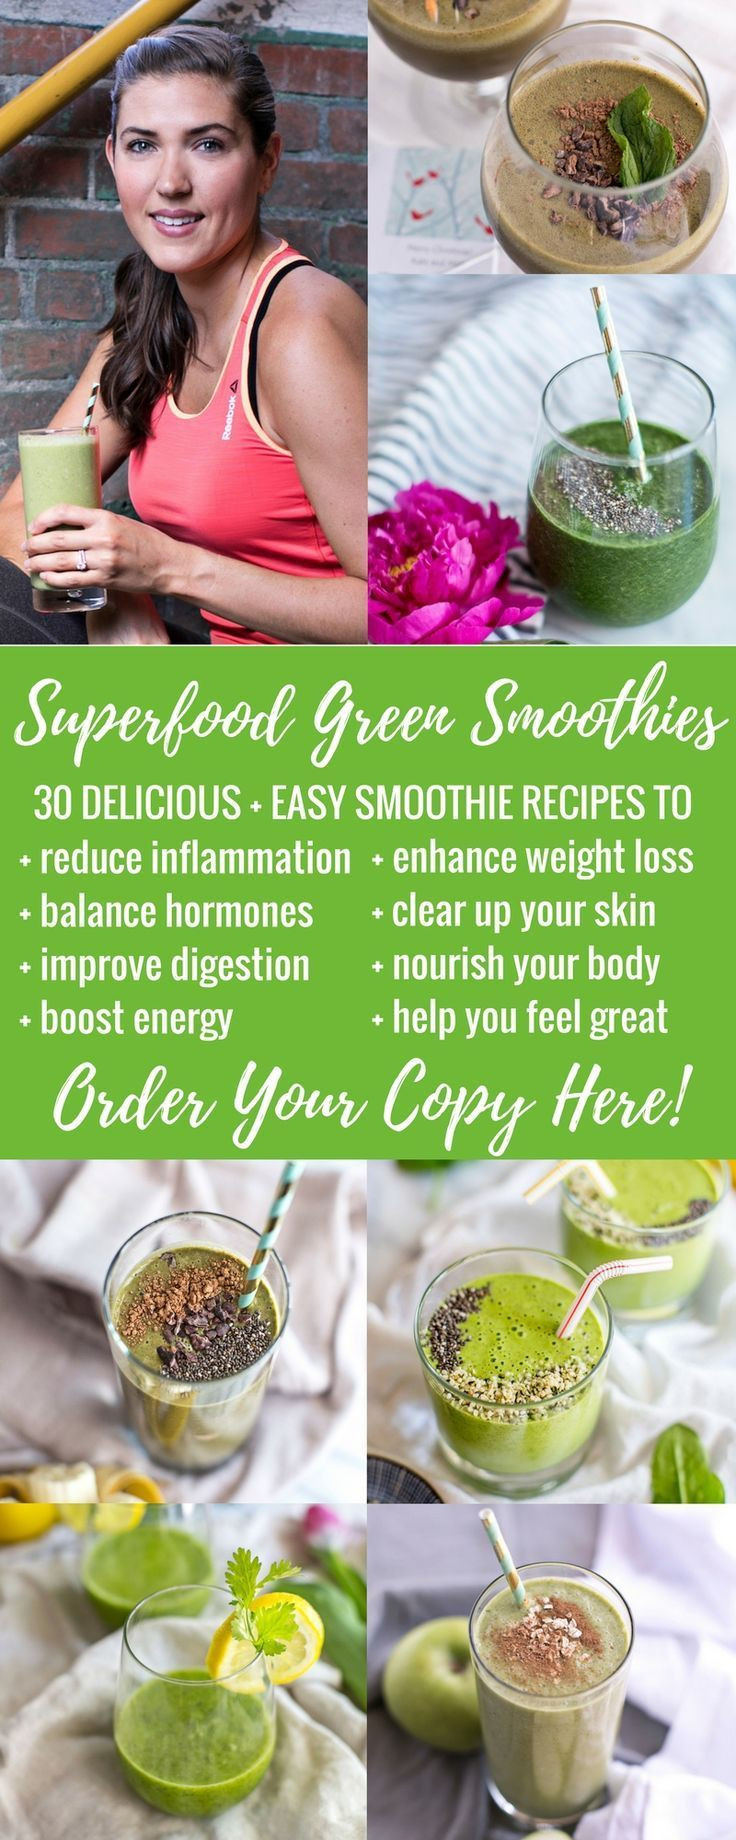 30 10 Weight Loss Recipes  Healthy Recipes 30 Delicious Easy Smoothie Recipes to